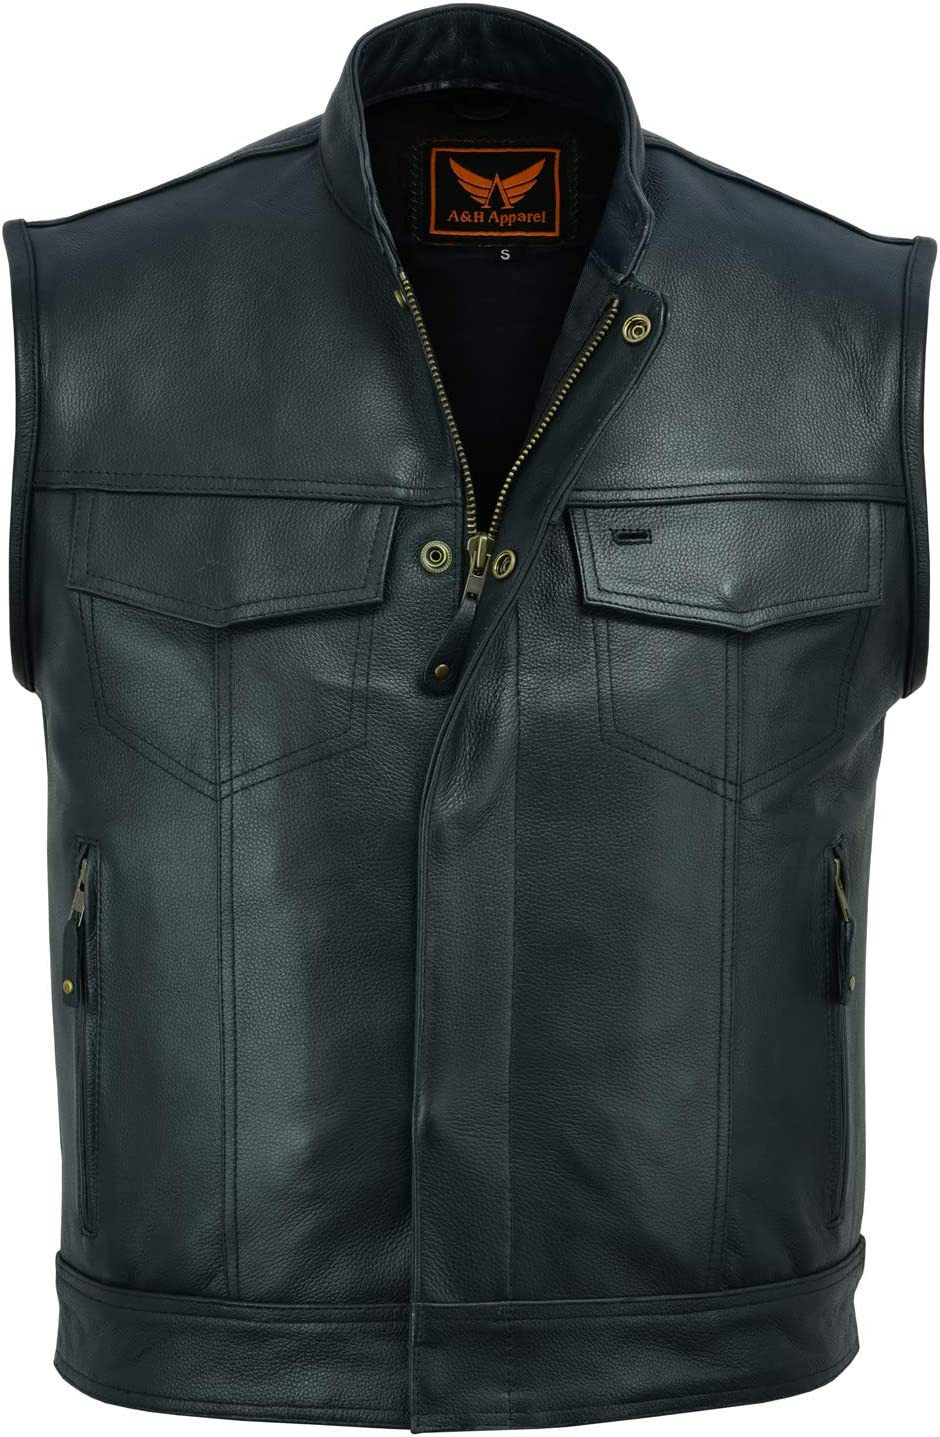 Womens Motorcycle Leather Vest Genuine Cowhide Leather Black Concealed Carry 032